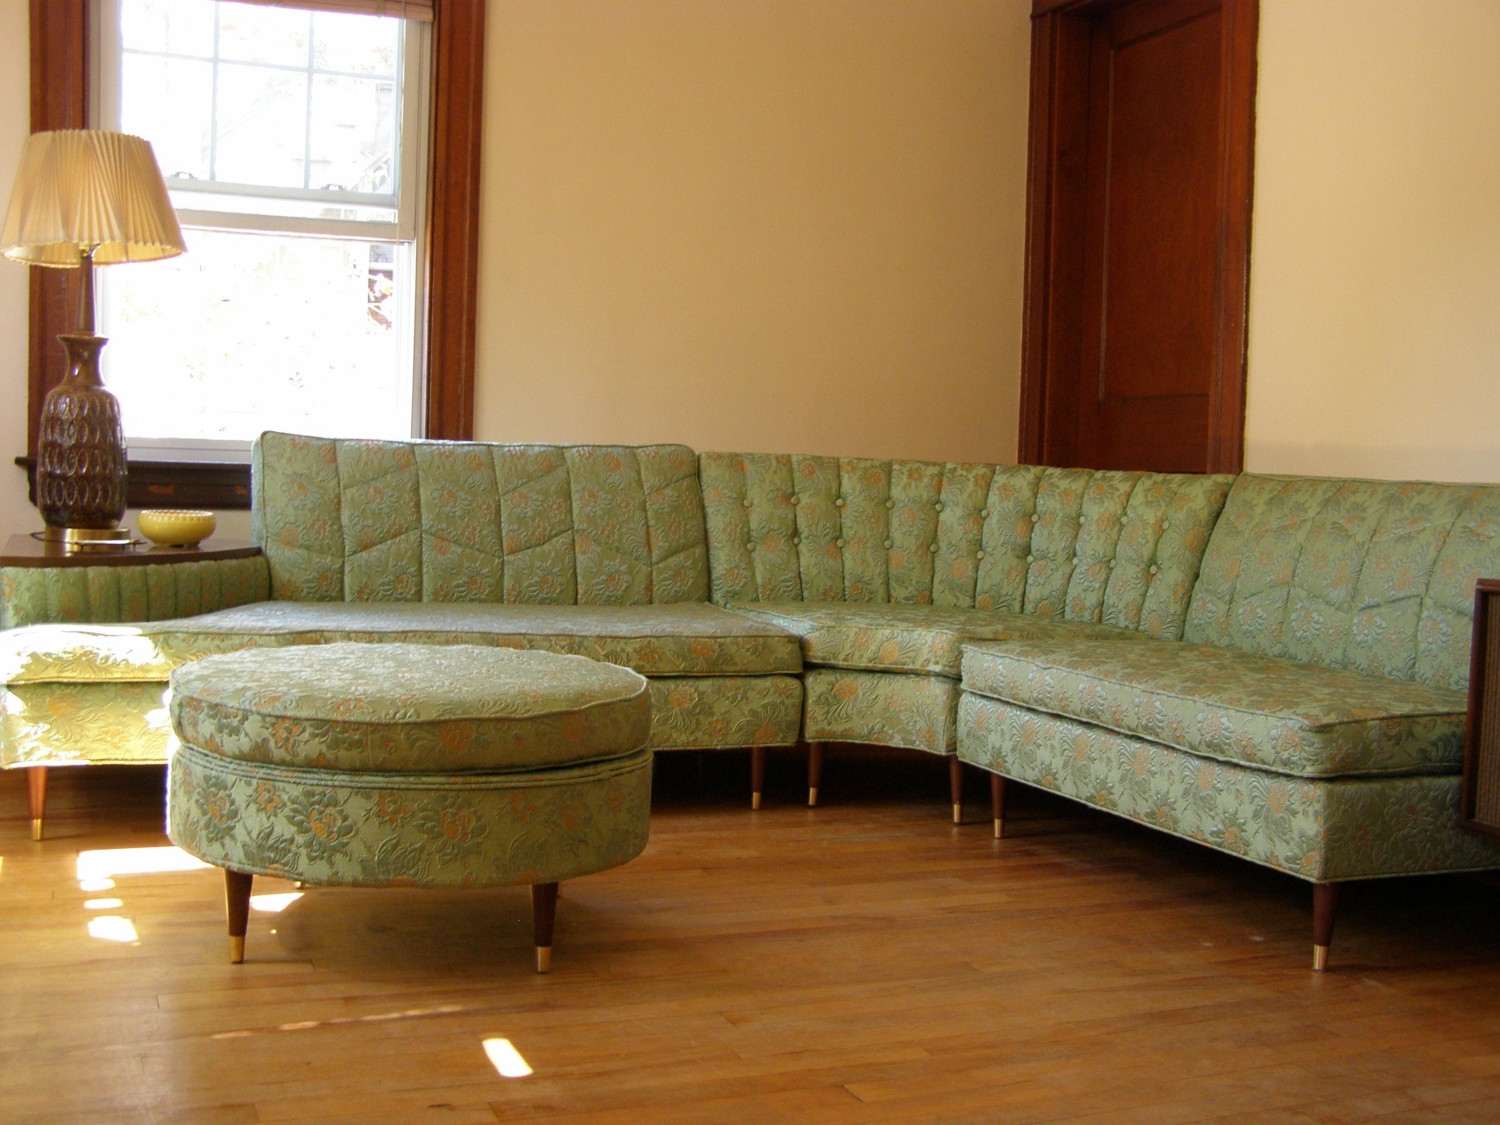 New Years Sale Vintage Sectional Sofa With Built In Side Table Regarding Retro Sofas For Sale (Image 5 of 15)